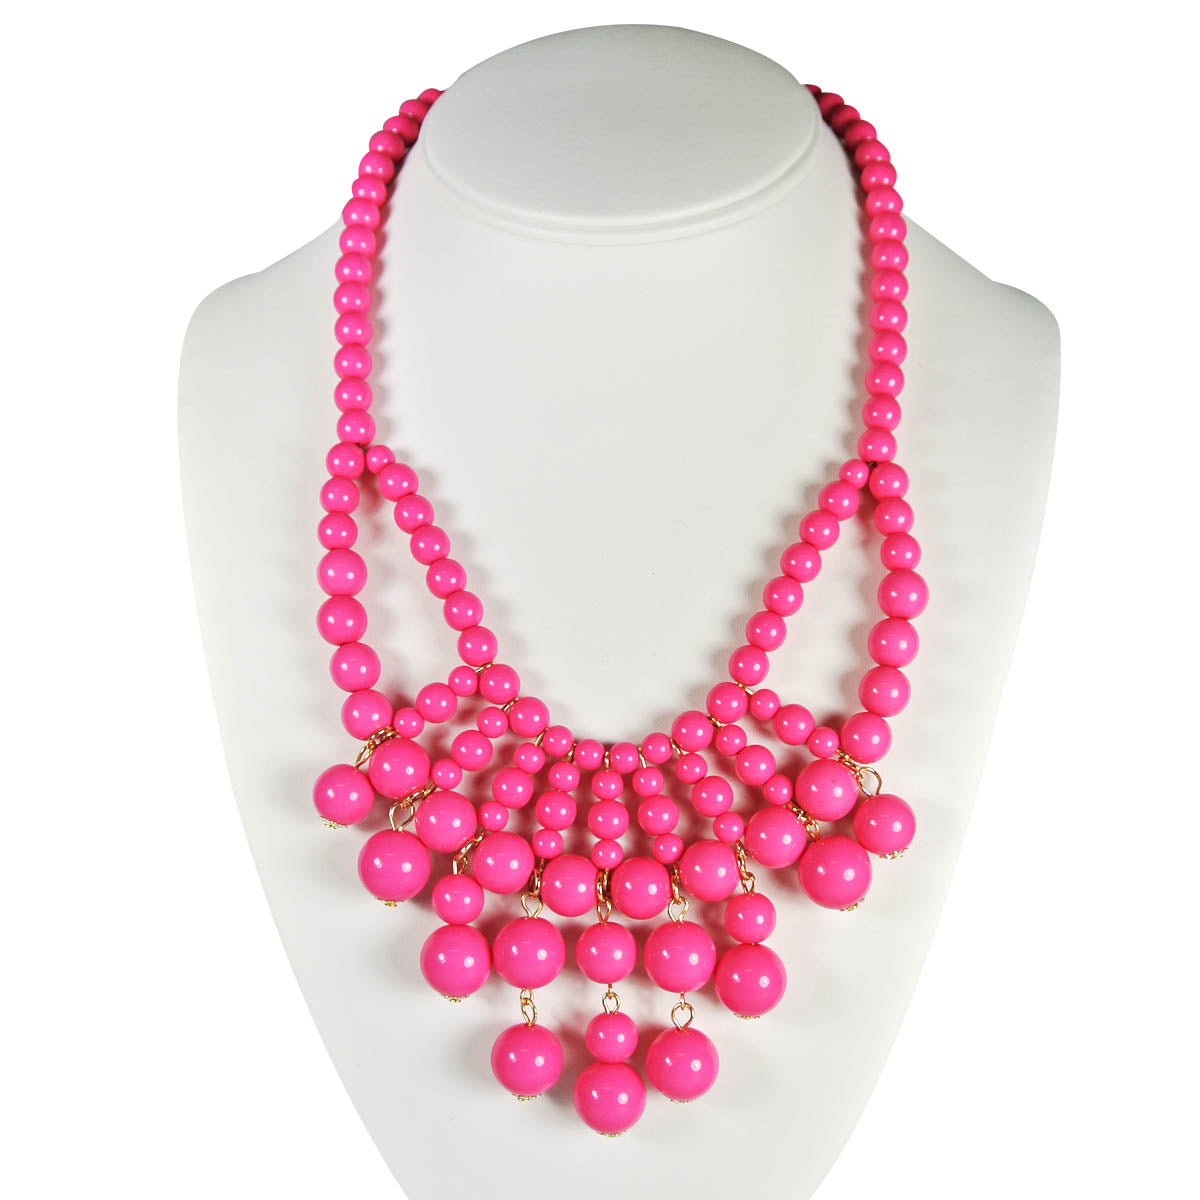 Wrapables Round Beaded Extravagant Bubble Bib Statement Necklace